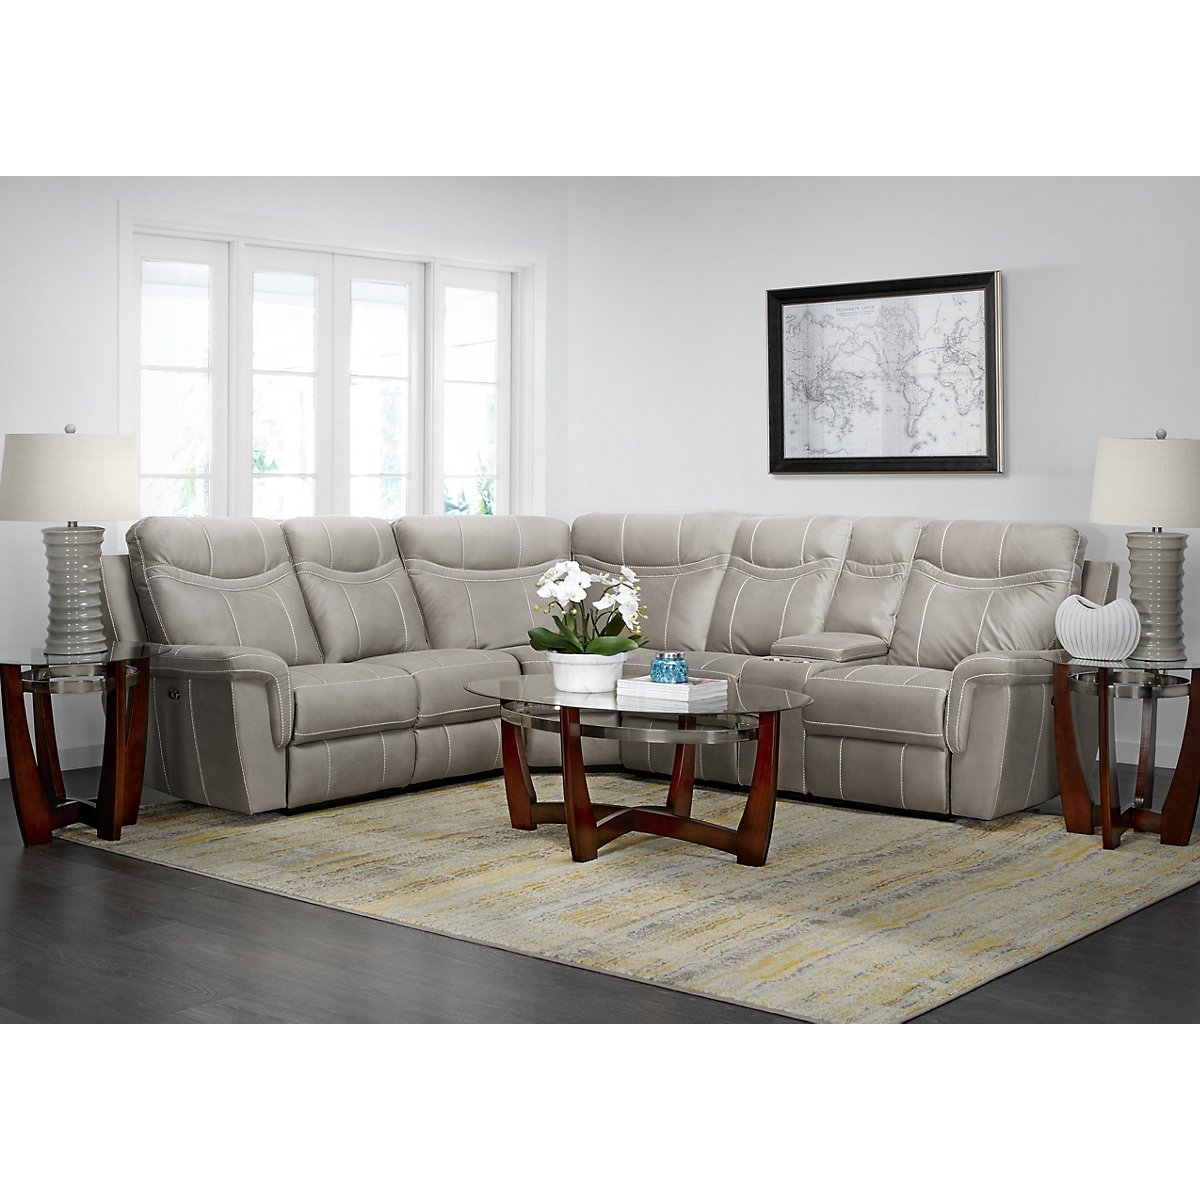 City Furniture: Boardwalk Pewter Microfiber Small Two-Arm Power ...